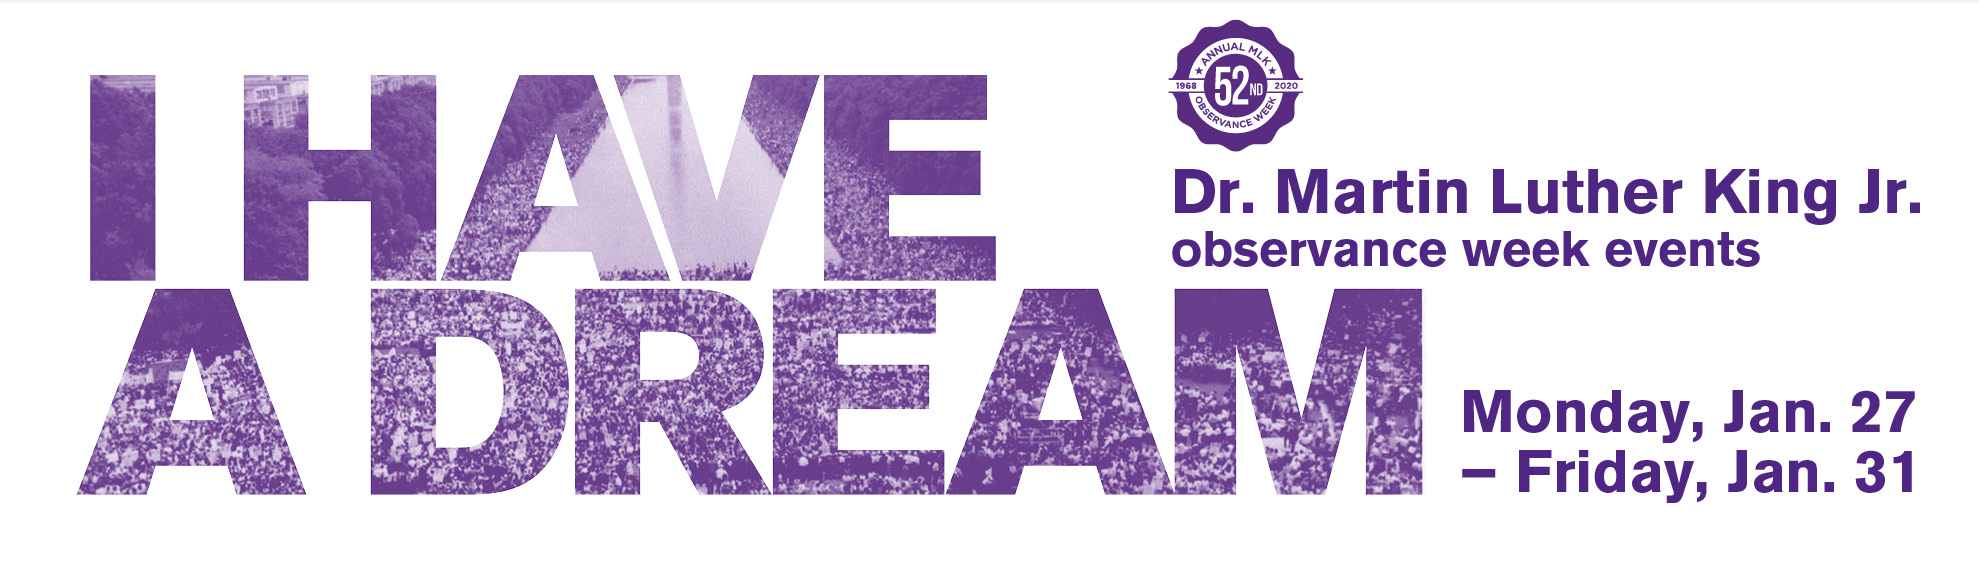 I have a dream; Dr. Martin Luther King Jr. observance week events; Monday Jan. 27 - Friday Jan. 31